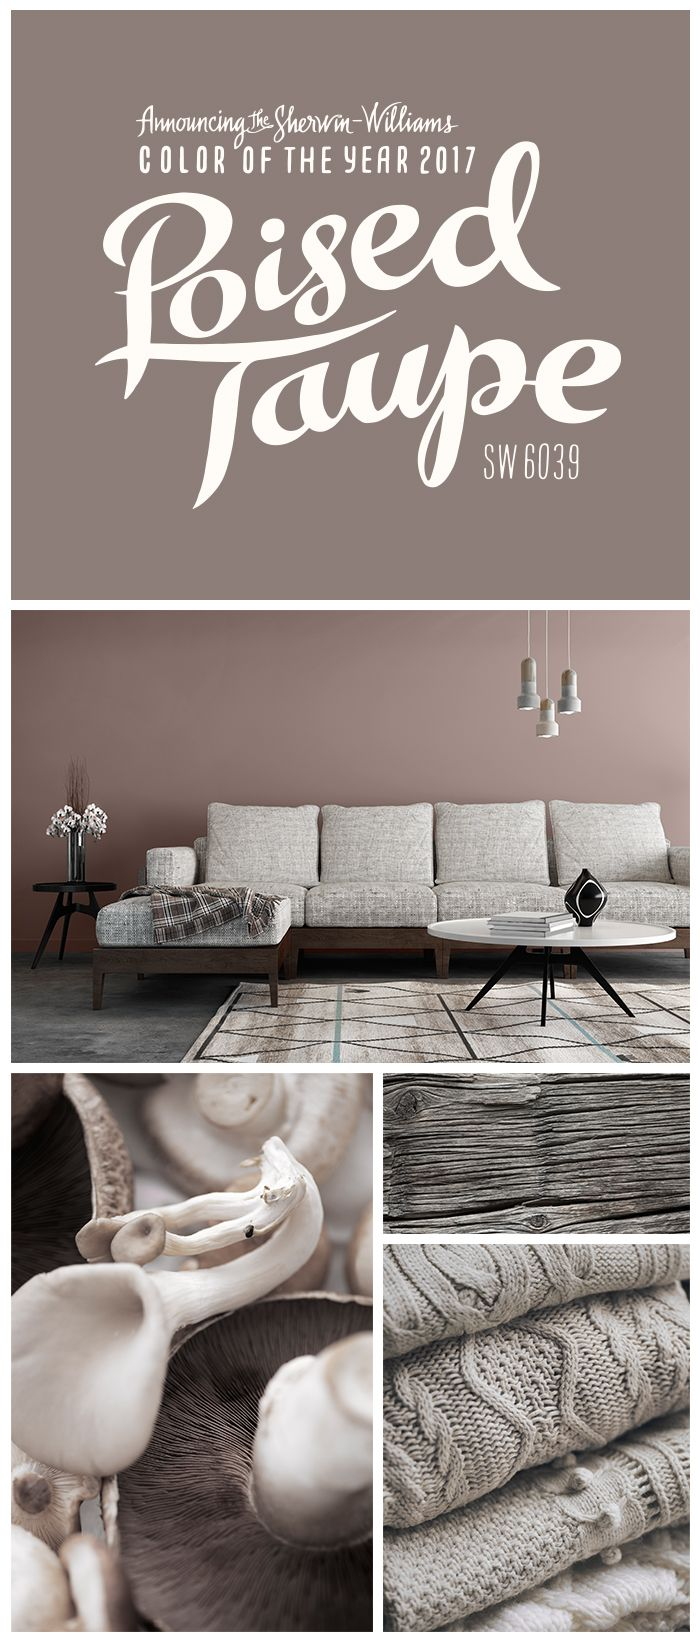 105 best paint color of the year images on pinterest | color of